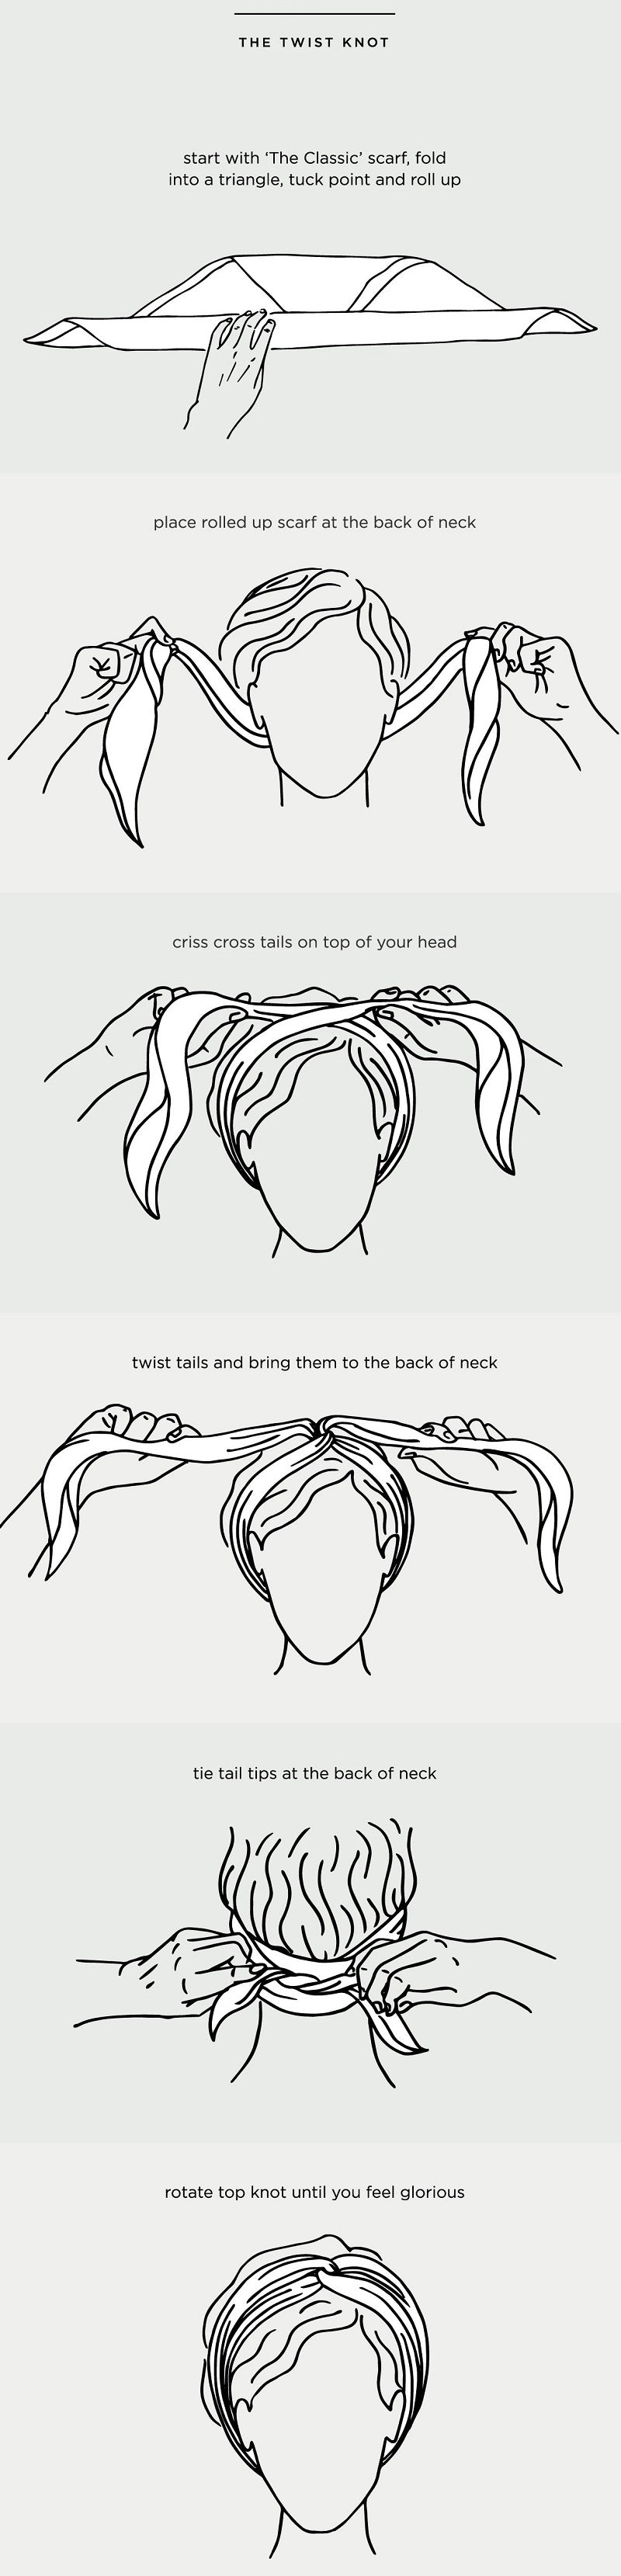 the twist knot